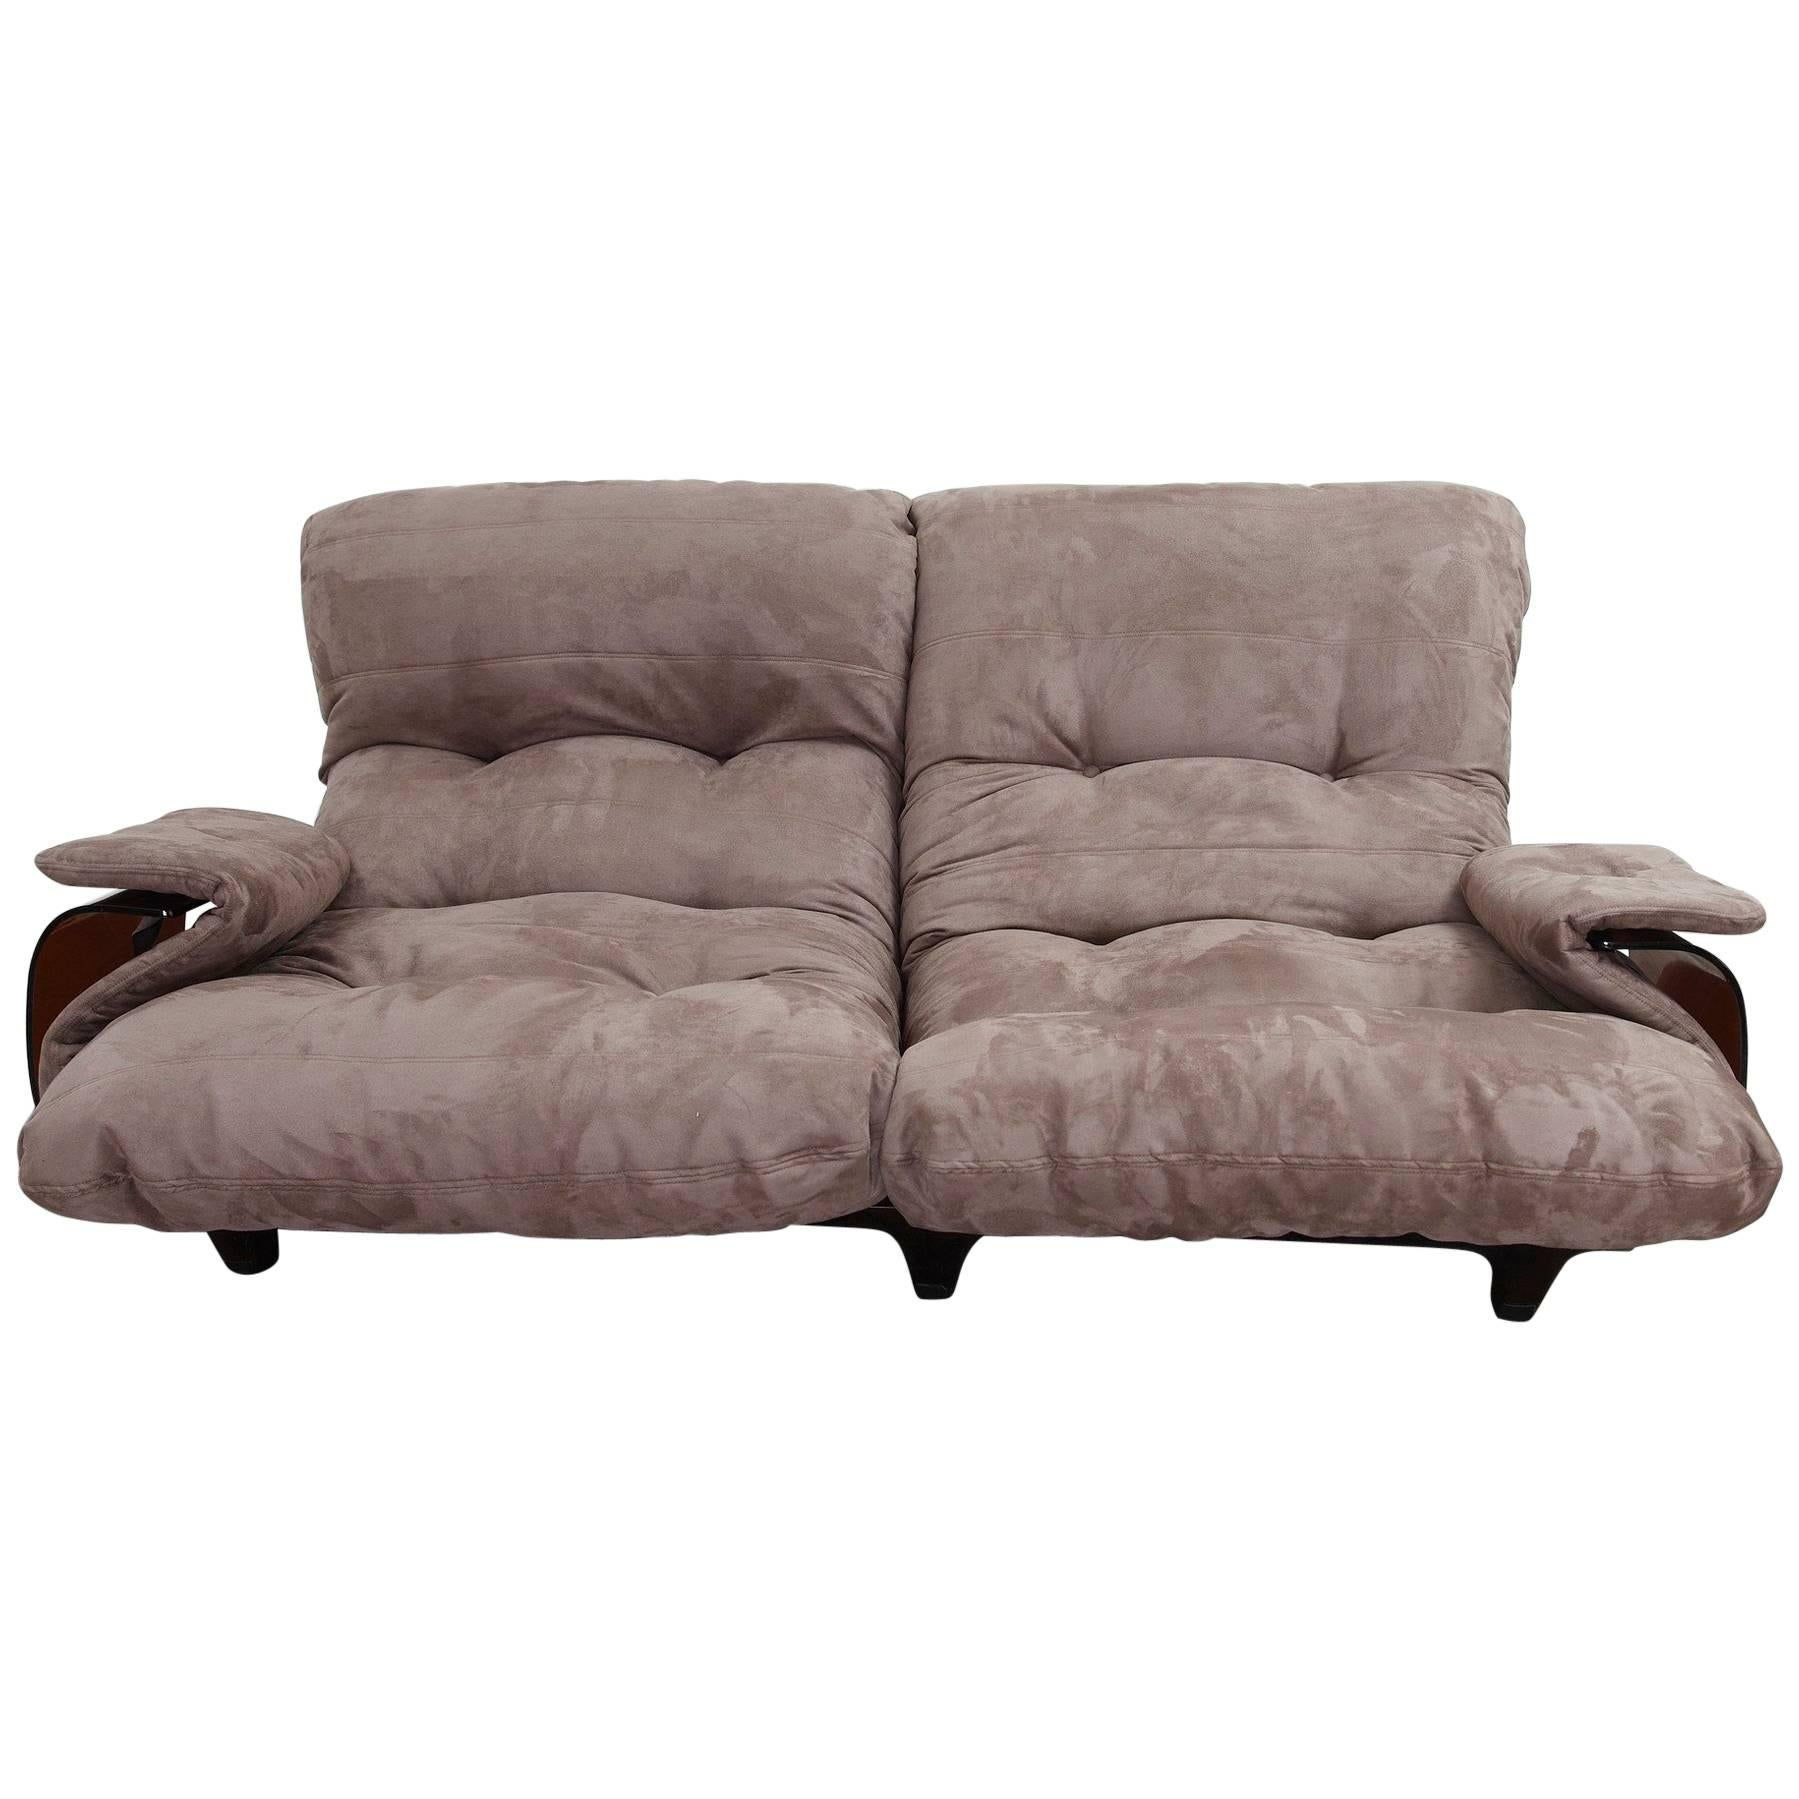 Ligne Roset Sofa Michel Ducaroy Two Seat Sofa Marsala For Ligne Roset